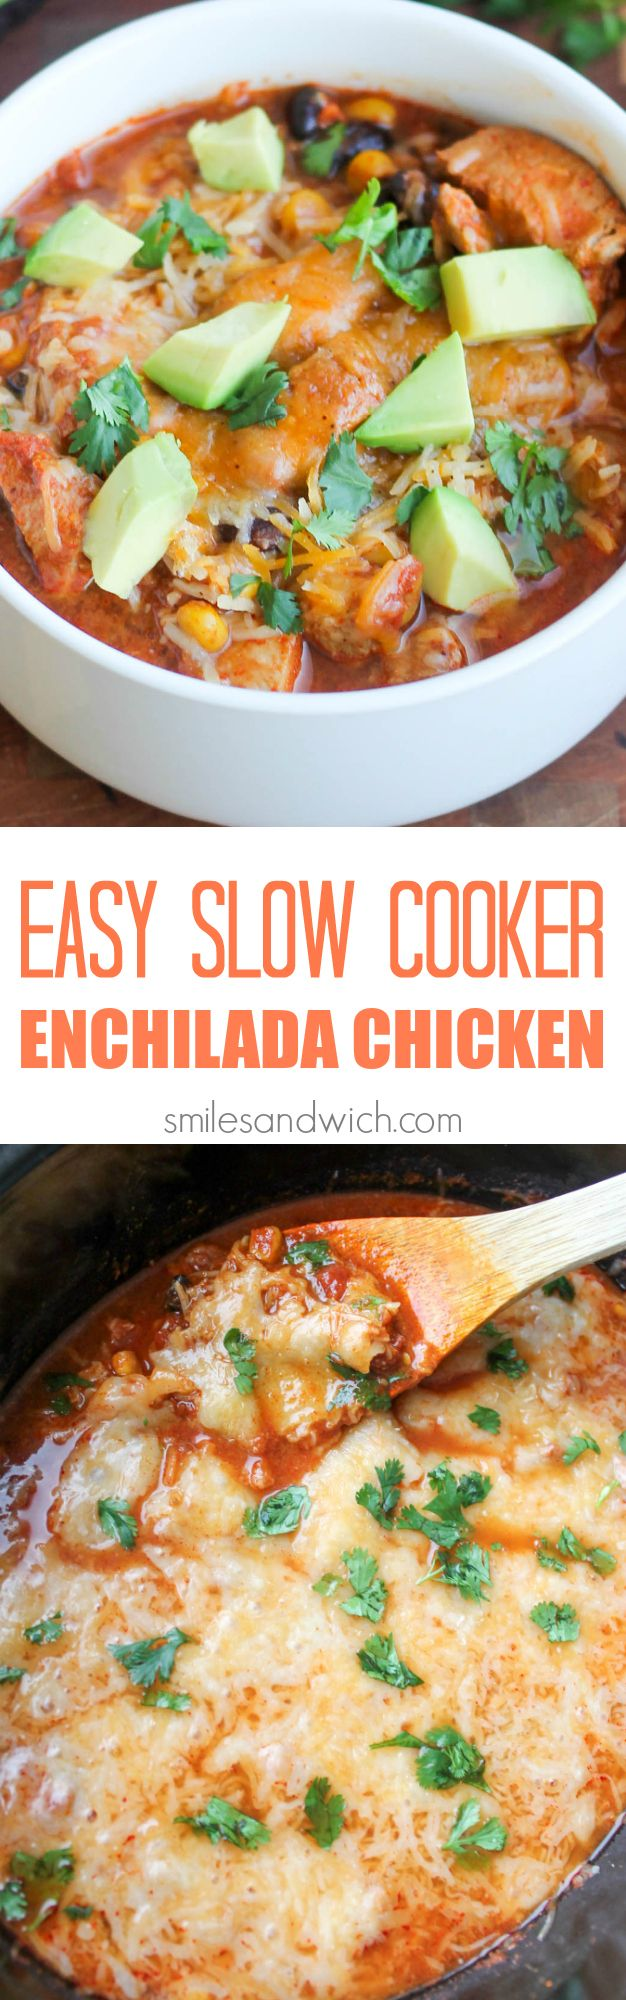 Easy Slow Cooker Enchilada Chicken - a dump and go healthy slow cooker recipe that has all the flavors of chicken enchiladas, without the tortillas! low carb slow cooker recipes, healthy slow cooker recipes, easy slow cooker recipes, slow cooker recipes for dinner, chicken slow cooker recipes